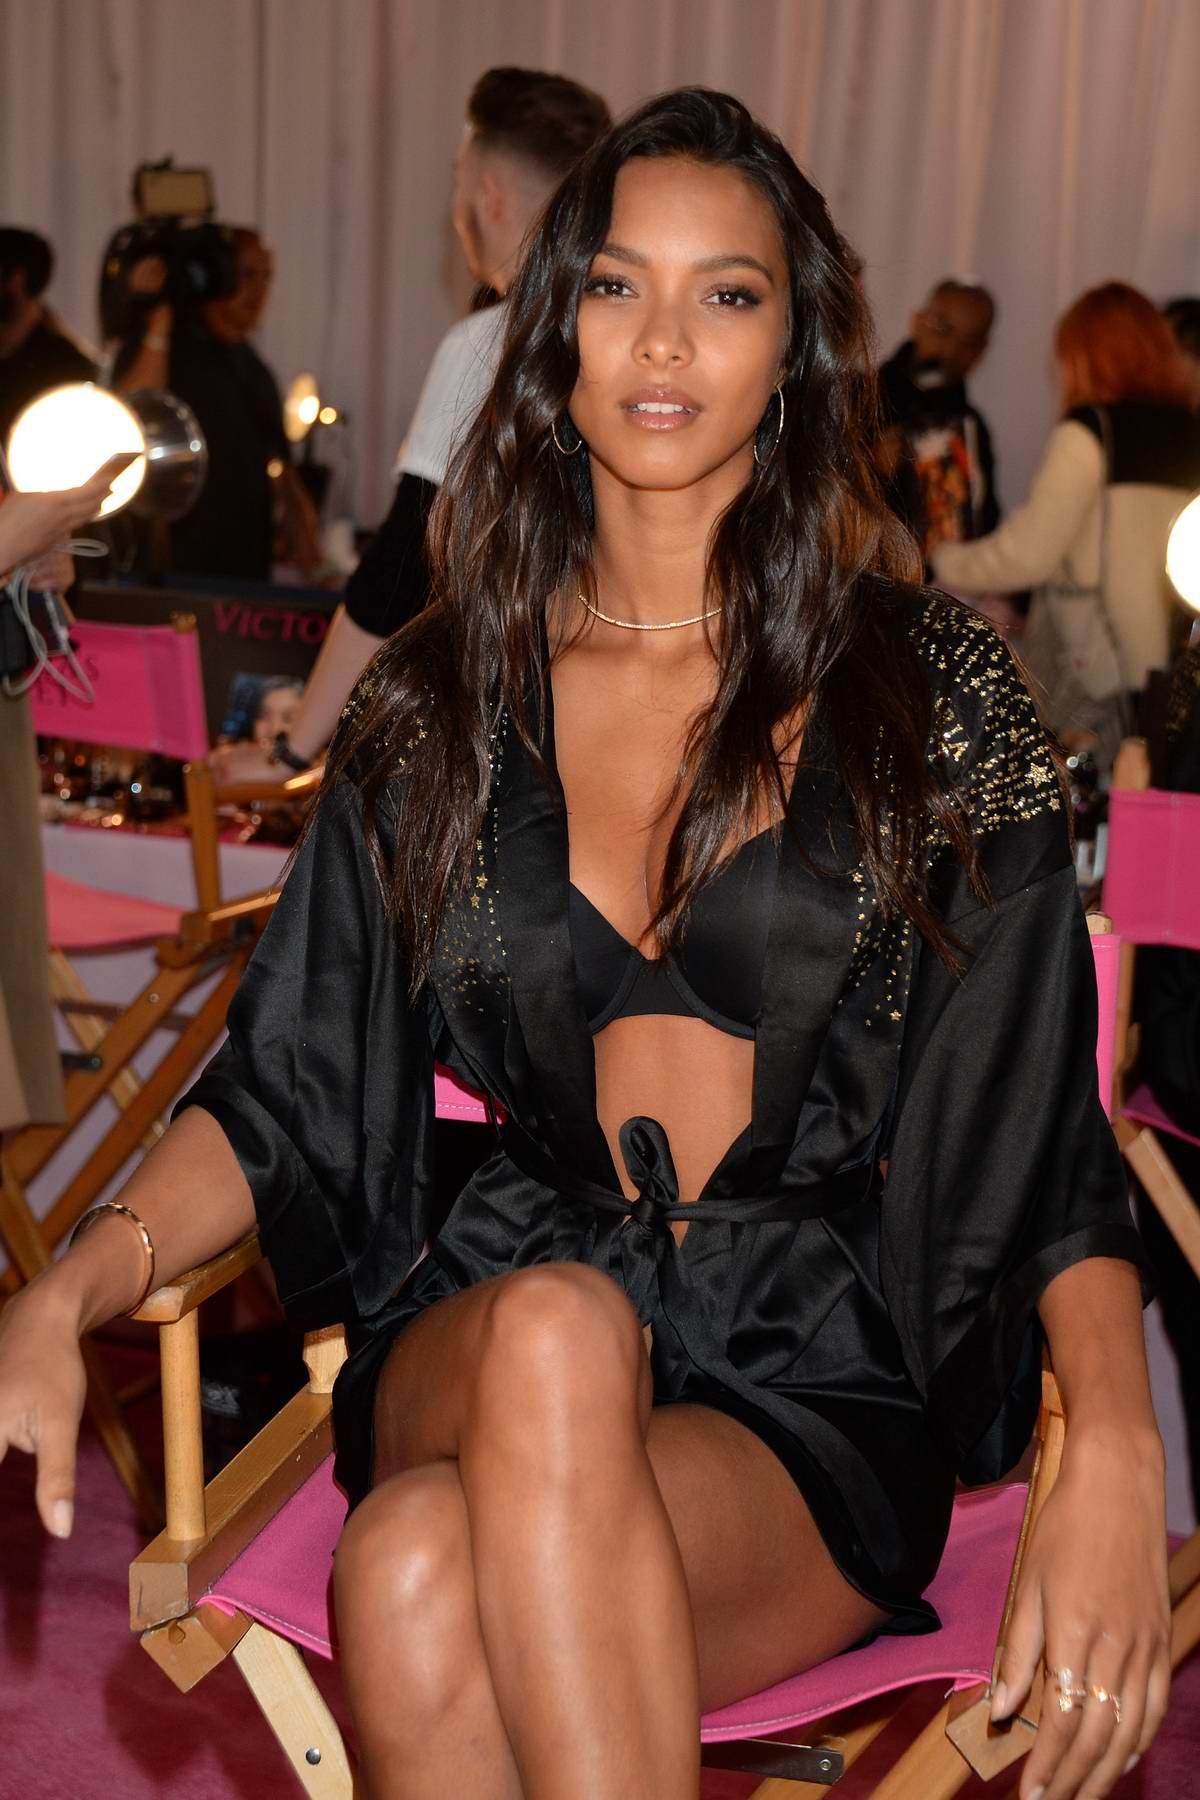 Lais Ribeiro seen backstage during the 2018 Victoria's Secret Fashion Show in New York City